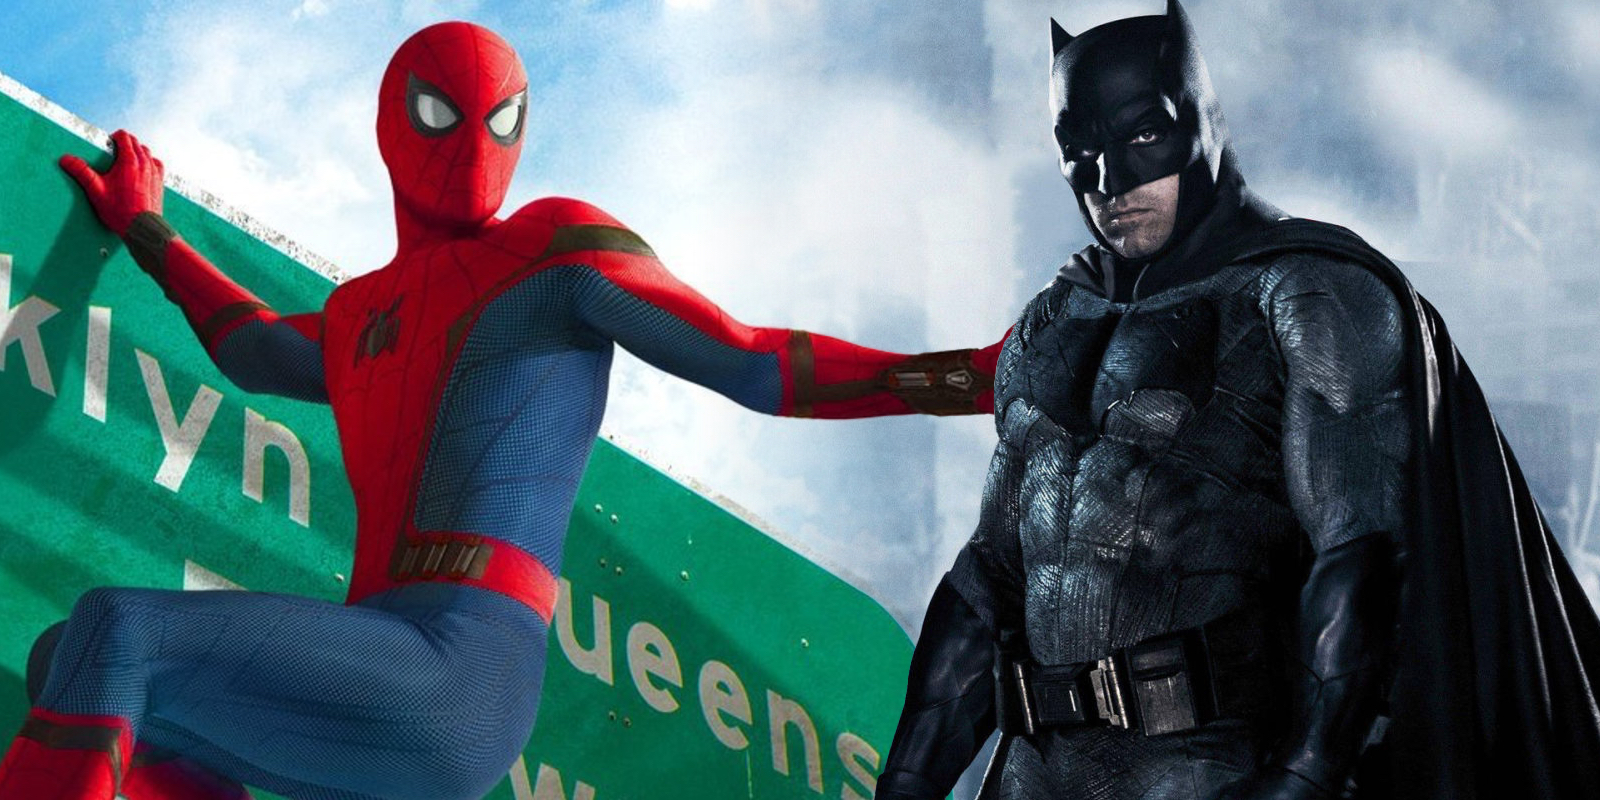 Spider-Man V Batman Fan Trailer | Screen Rant